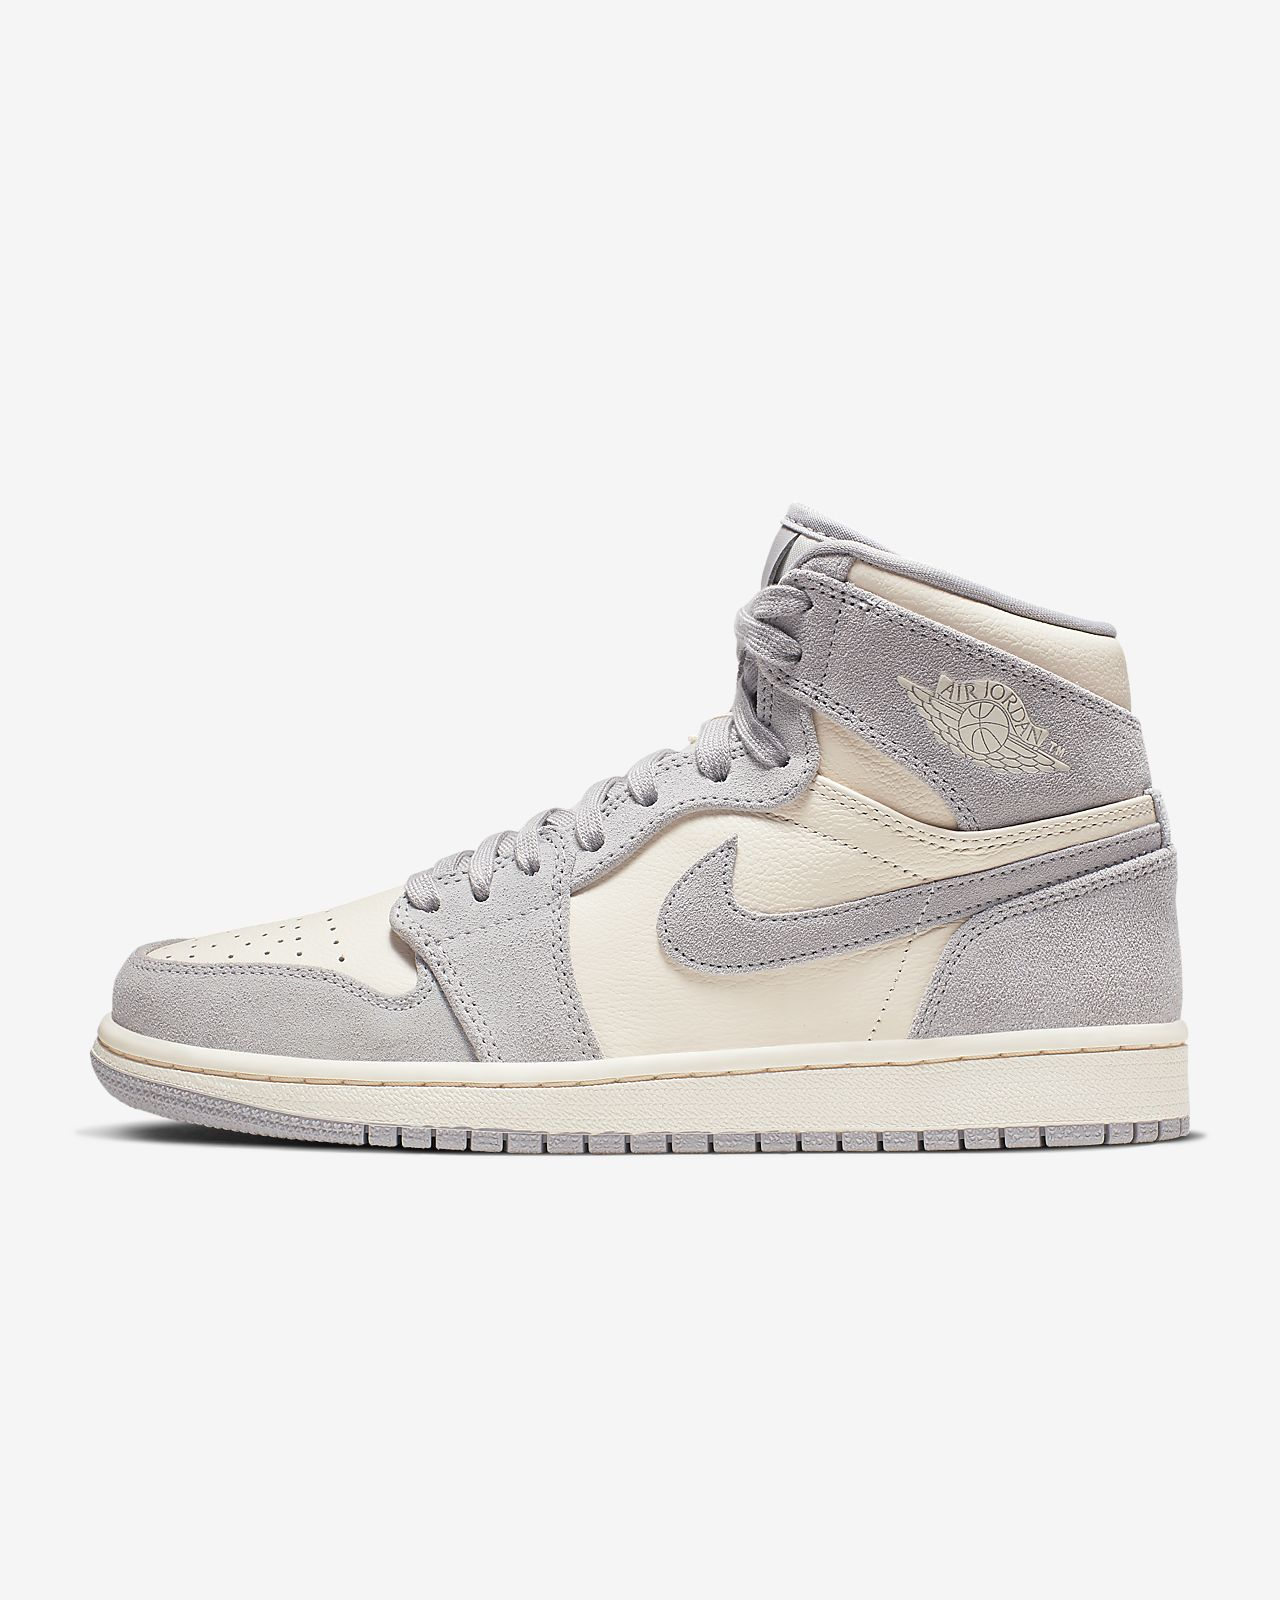 b5412feb4 Nike Air Jordan 1 Retro High Premium Women s Shoe. Nike.com GB